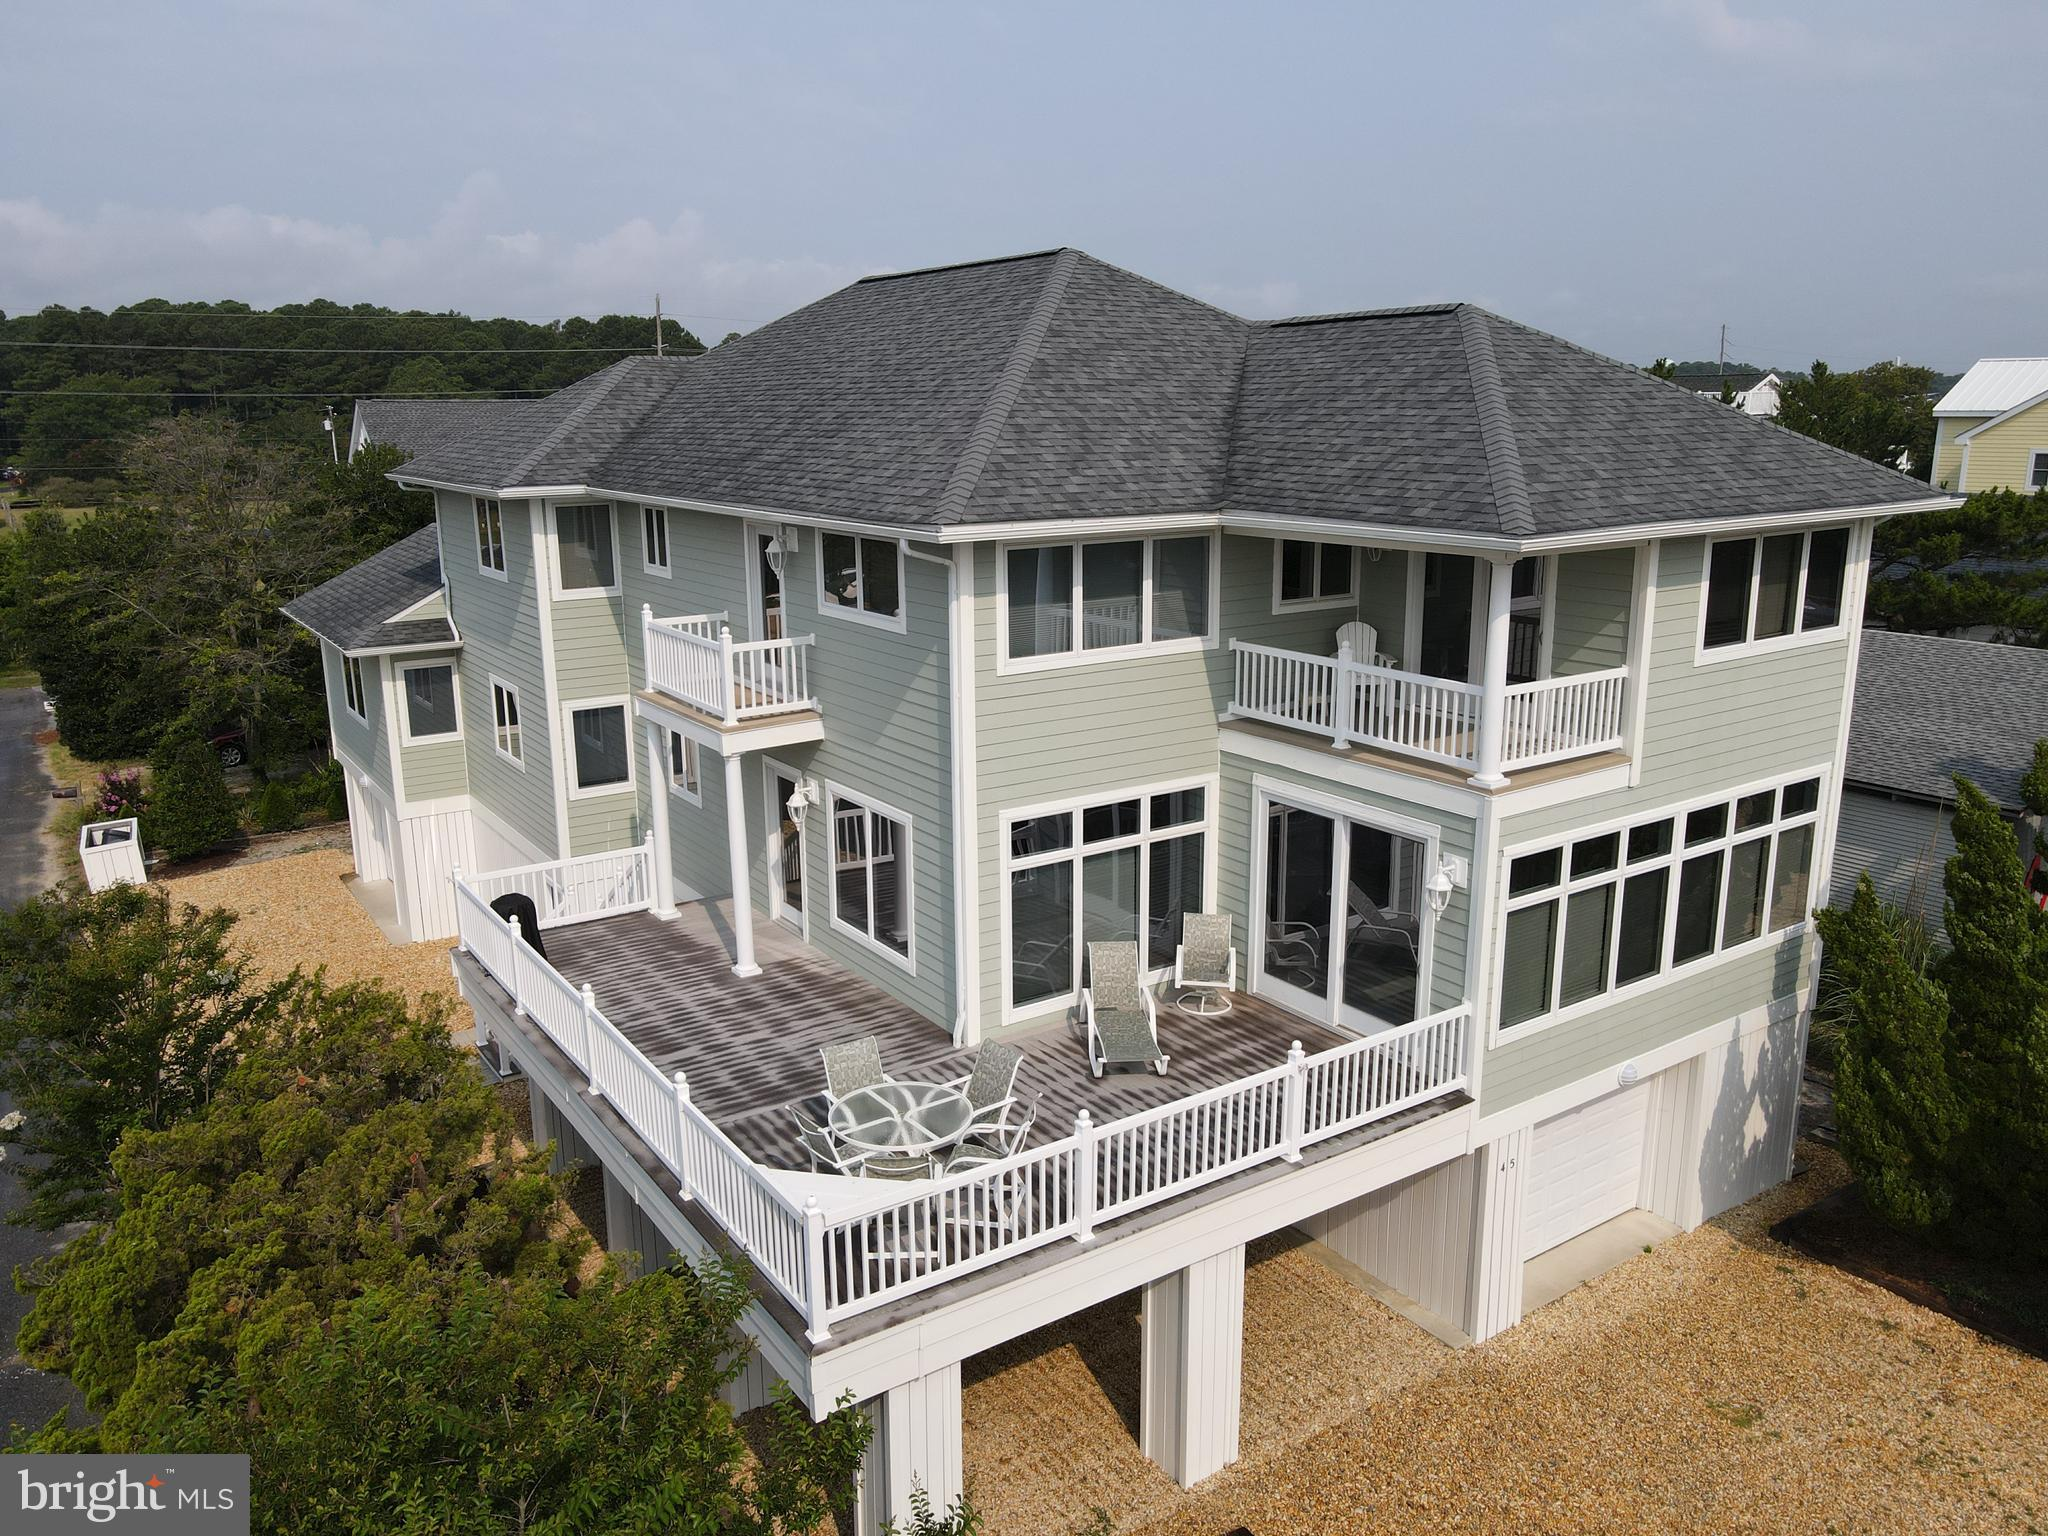 Beautiful 6 bedroom home located just one off the ocean in the sought after community of Middlesex Beach. This custom built coastal retreat features ocean views from almost every room in the home. On the ground level you will find covered parking for 4 cars with additional parking for 4 more cars on the exterior, 2 large outdoor showers, a 1/2 bathroom perfect for running back and forth from the beach, a large storage and utility room with workbench and additional refrigerator to store all of your beach gear, bikes, etc... and access to the elevator. As you enter the 2nd level you will step into the great room featuring an open kitchen, living and dining area. This huge space is perfect for large gatherings and entertaining. Features include a massive wet bar, gas fireplace, large kitchen island and separate dining area. Step out onto the wrap around deck and take in the ocean views and feel the ocean breeze. Also on the 2nd level is a powder room, laundry room, 2 bedrooms with full bathrooms and a flex room that is currently set up as an office space / game room / library / tv room.  On the 3rd level you will find 4 more spacious suites. Two have private balconies, one has a built-in nursery and another has its own study.  The 3rd floor hallway features a kitchenette, prefect for late night or early morning drinks and snacks. This home has never been rented and has served the same family who built it in 2001. Recent improvements include a new roof in 2020, a new hot water heater in 2021, and new outdoor lighting in 2021. This home is selling fully furnished. Don't miss this opportunity to own your own piece of paradise in Middlesex Beach!